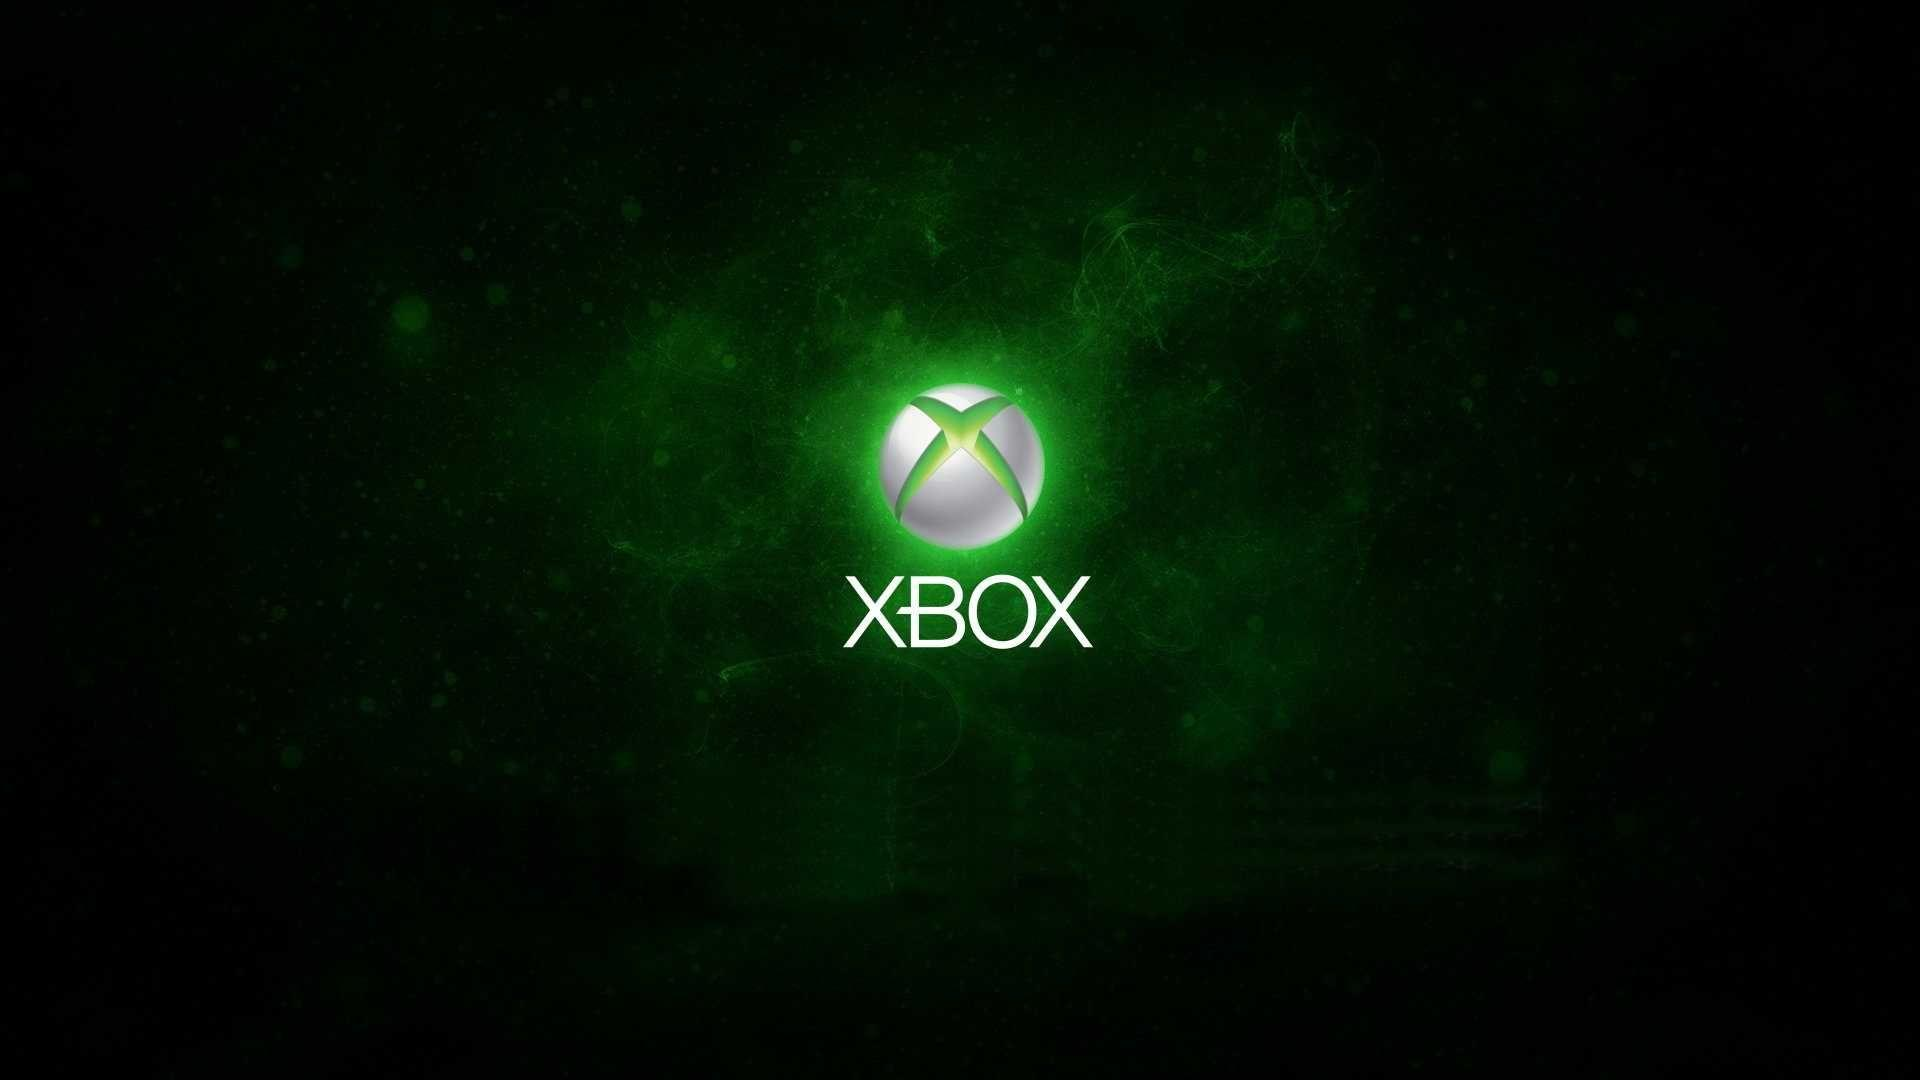 Xbox One Wallpapers HD - Wallpaper Cave